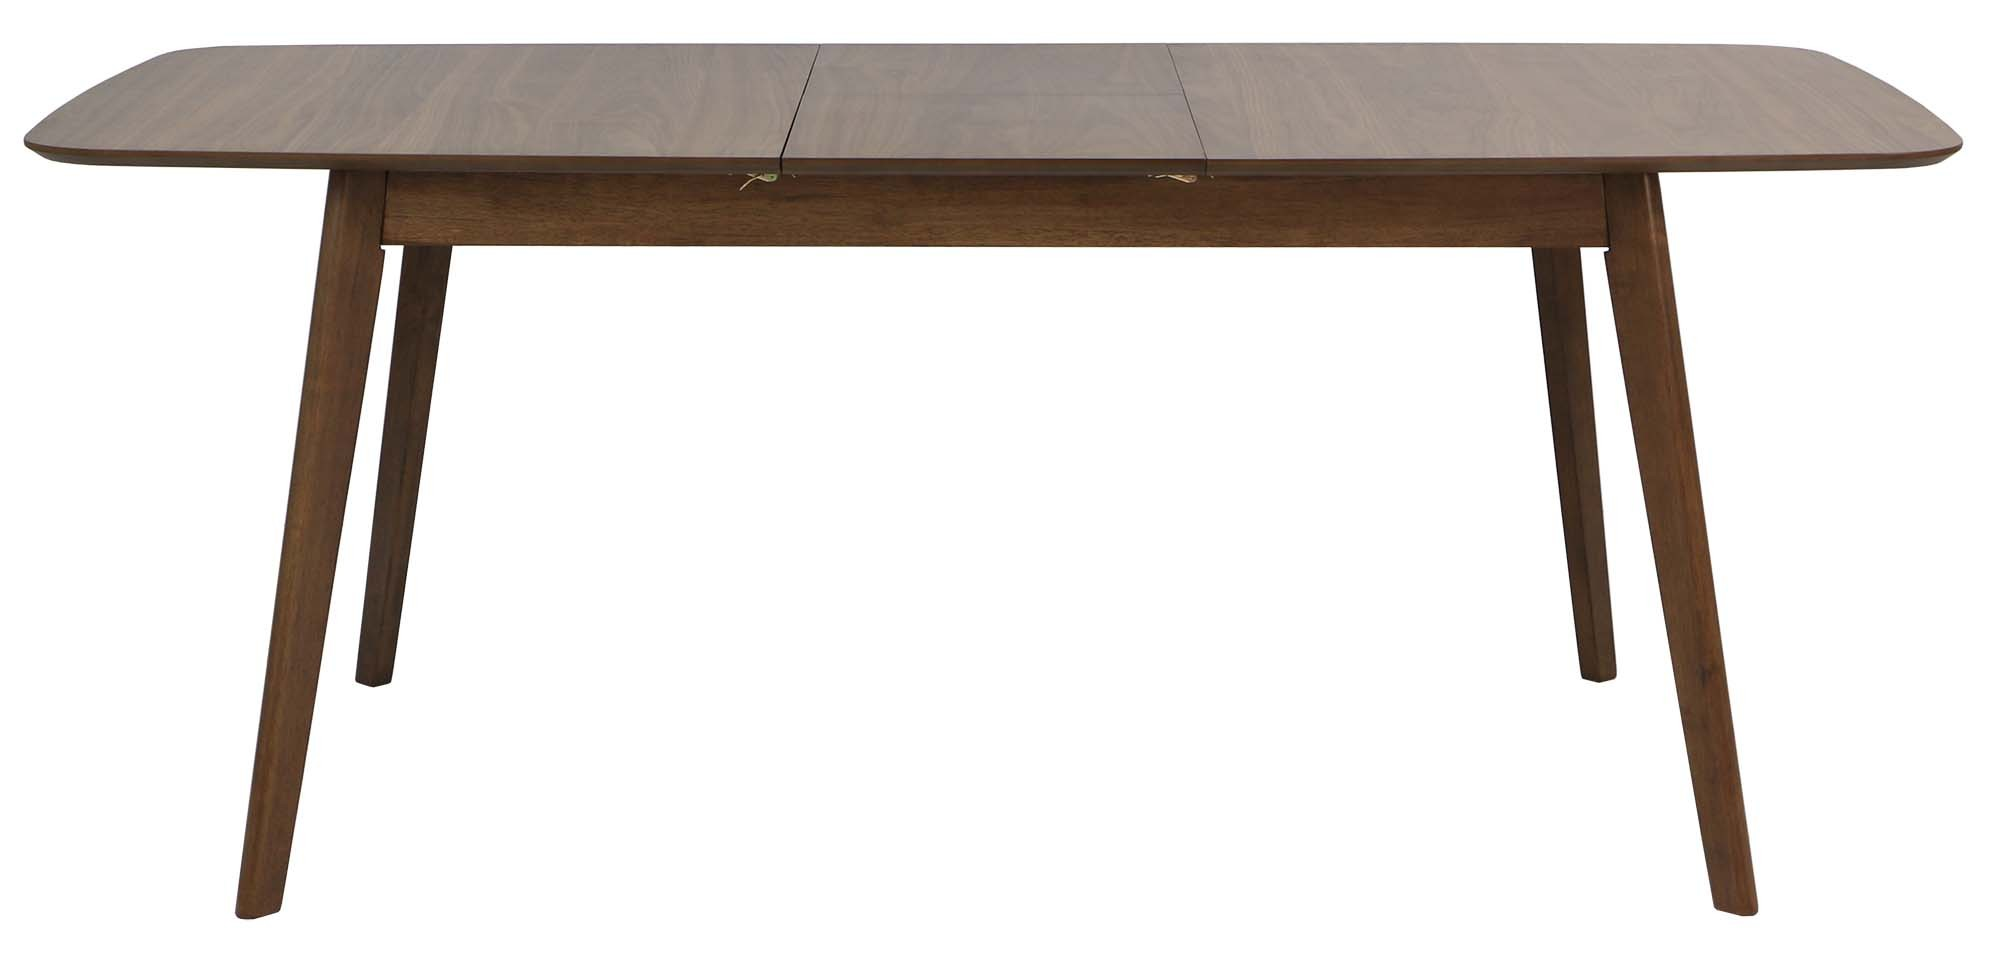 Kimberly Extension Butterfly Walnut Extension Kimberly Table Butterfly VLqzMpGUS